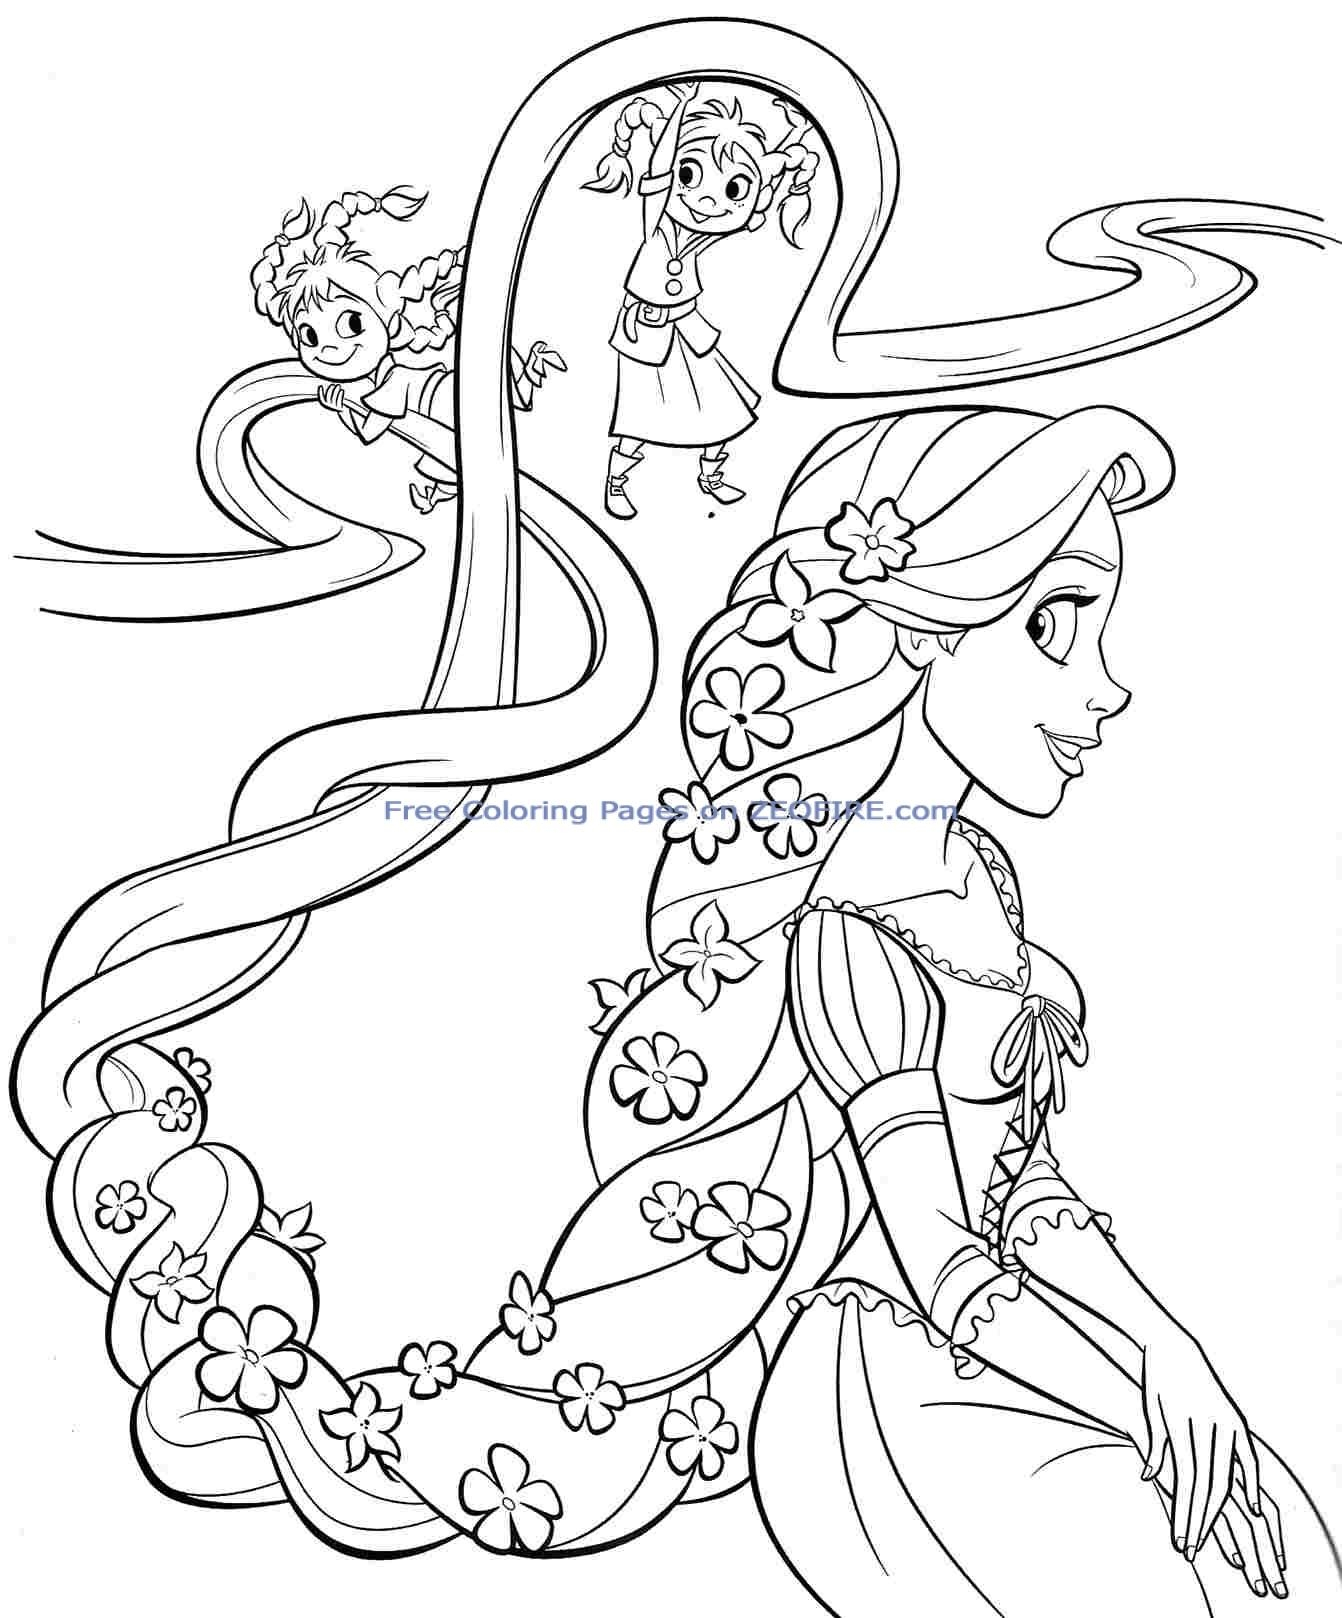 Baby Princess Coloring Pages To Download And Print For Free Princess Coloring Image